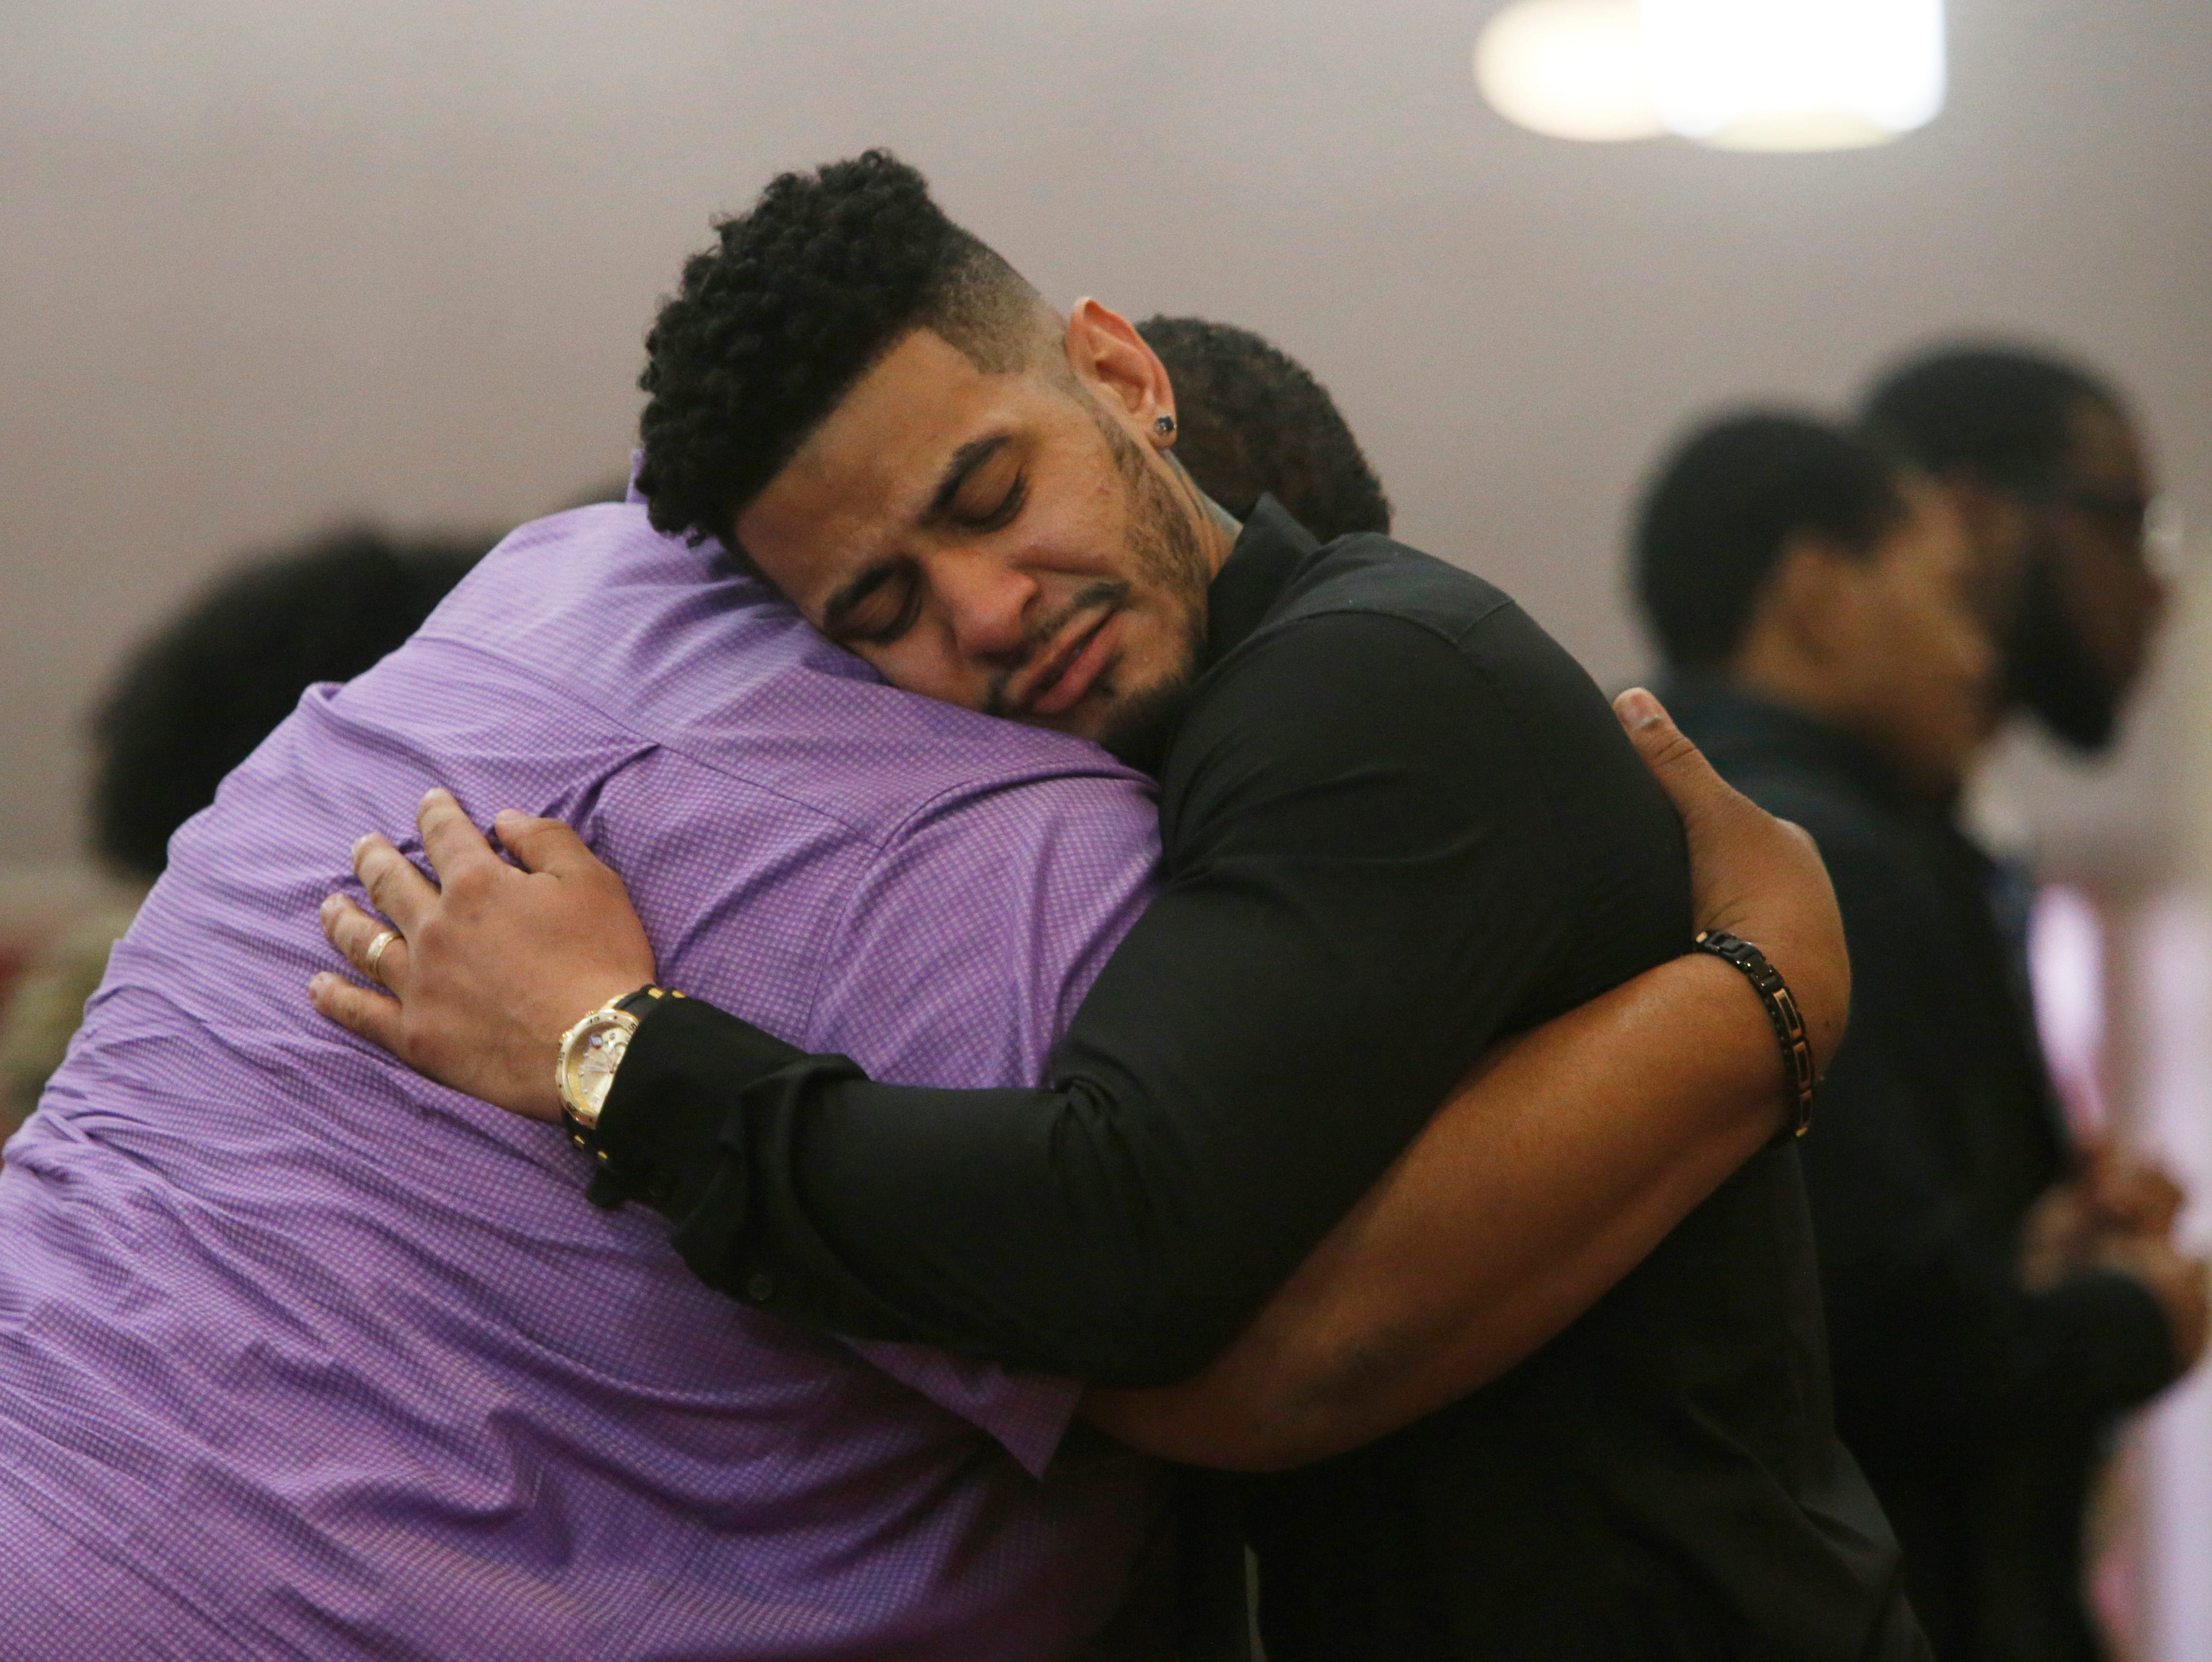 Terrance Parson embraces Georges Cesar, during Friday's funeral service forJaquan Cesar on February 22, 2019. Jaquan died on Feb 11th while attempting to help a stranded motorist on the Cross Bronx Expressway.